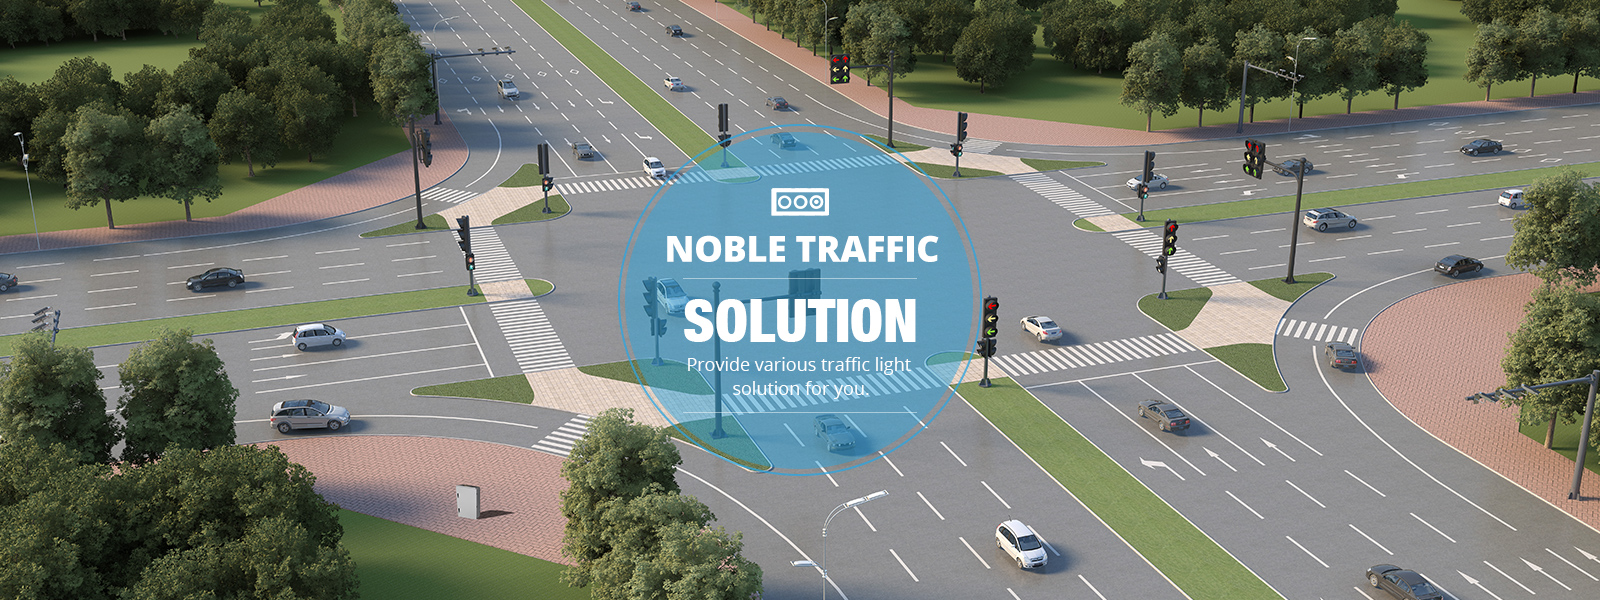 Noble traffic solution